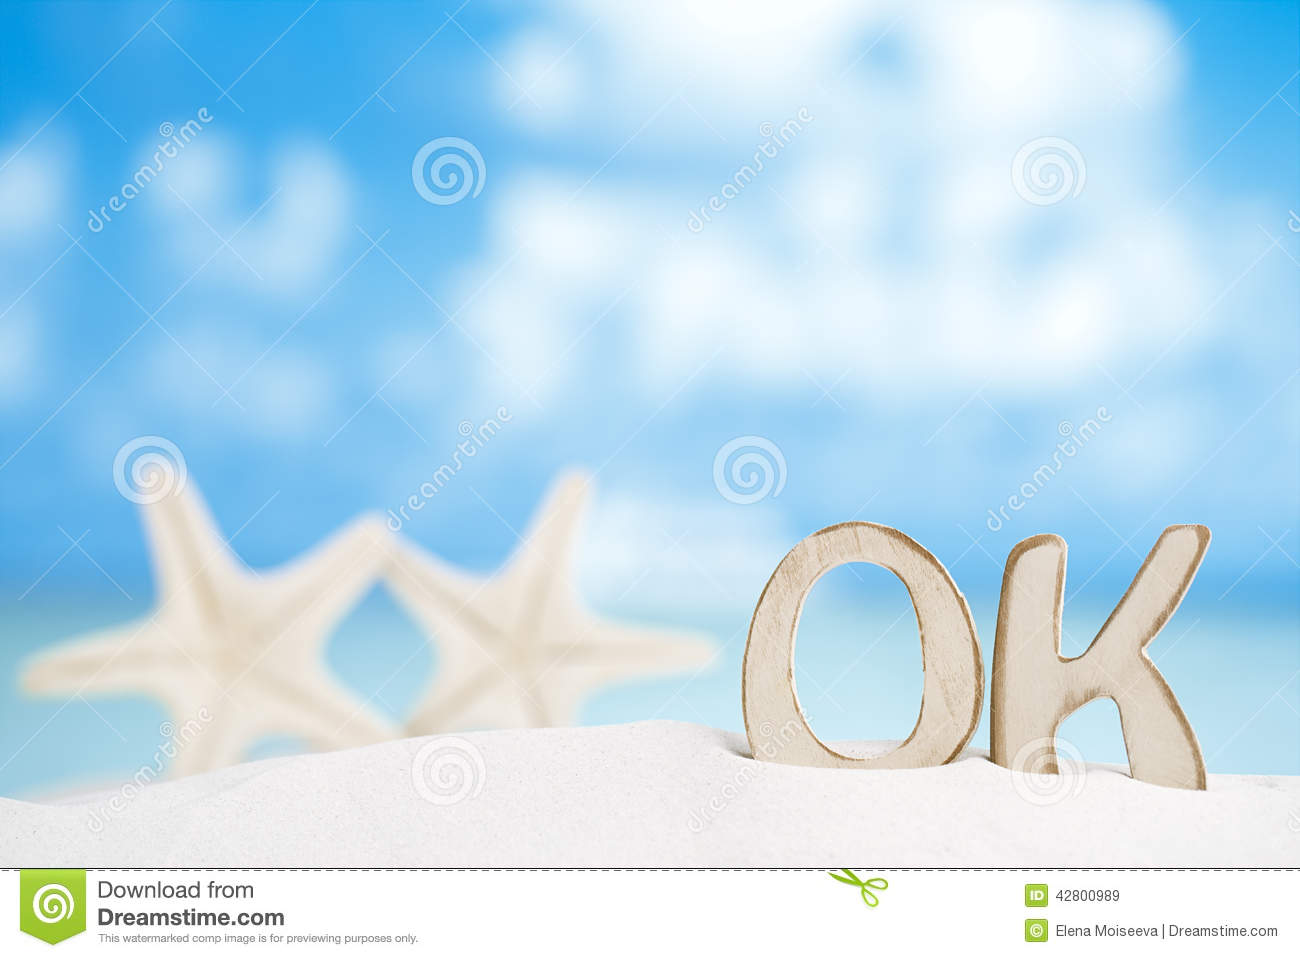 OK Message With Two Starfish On Florida White Sand Beach Stock Image